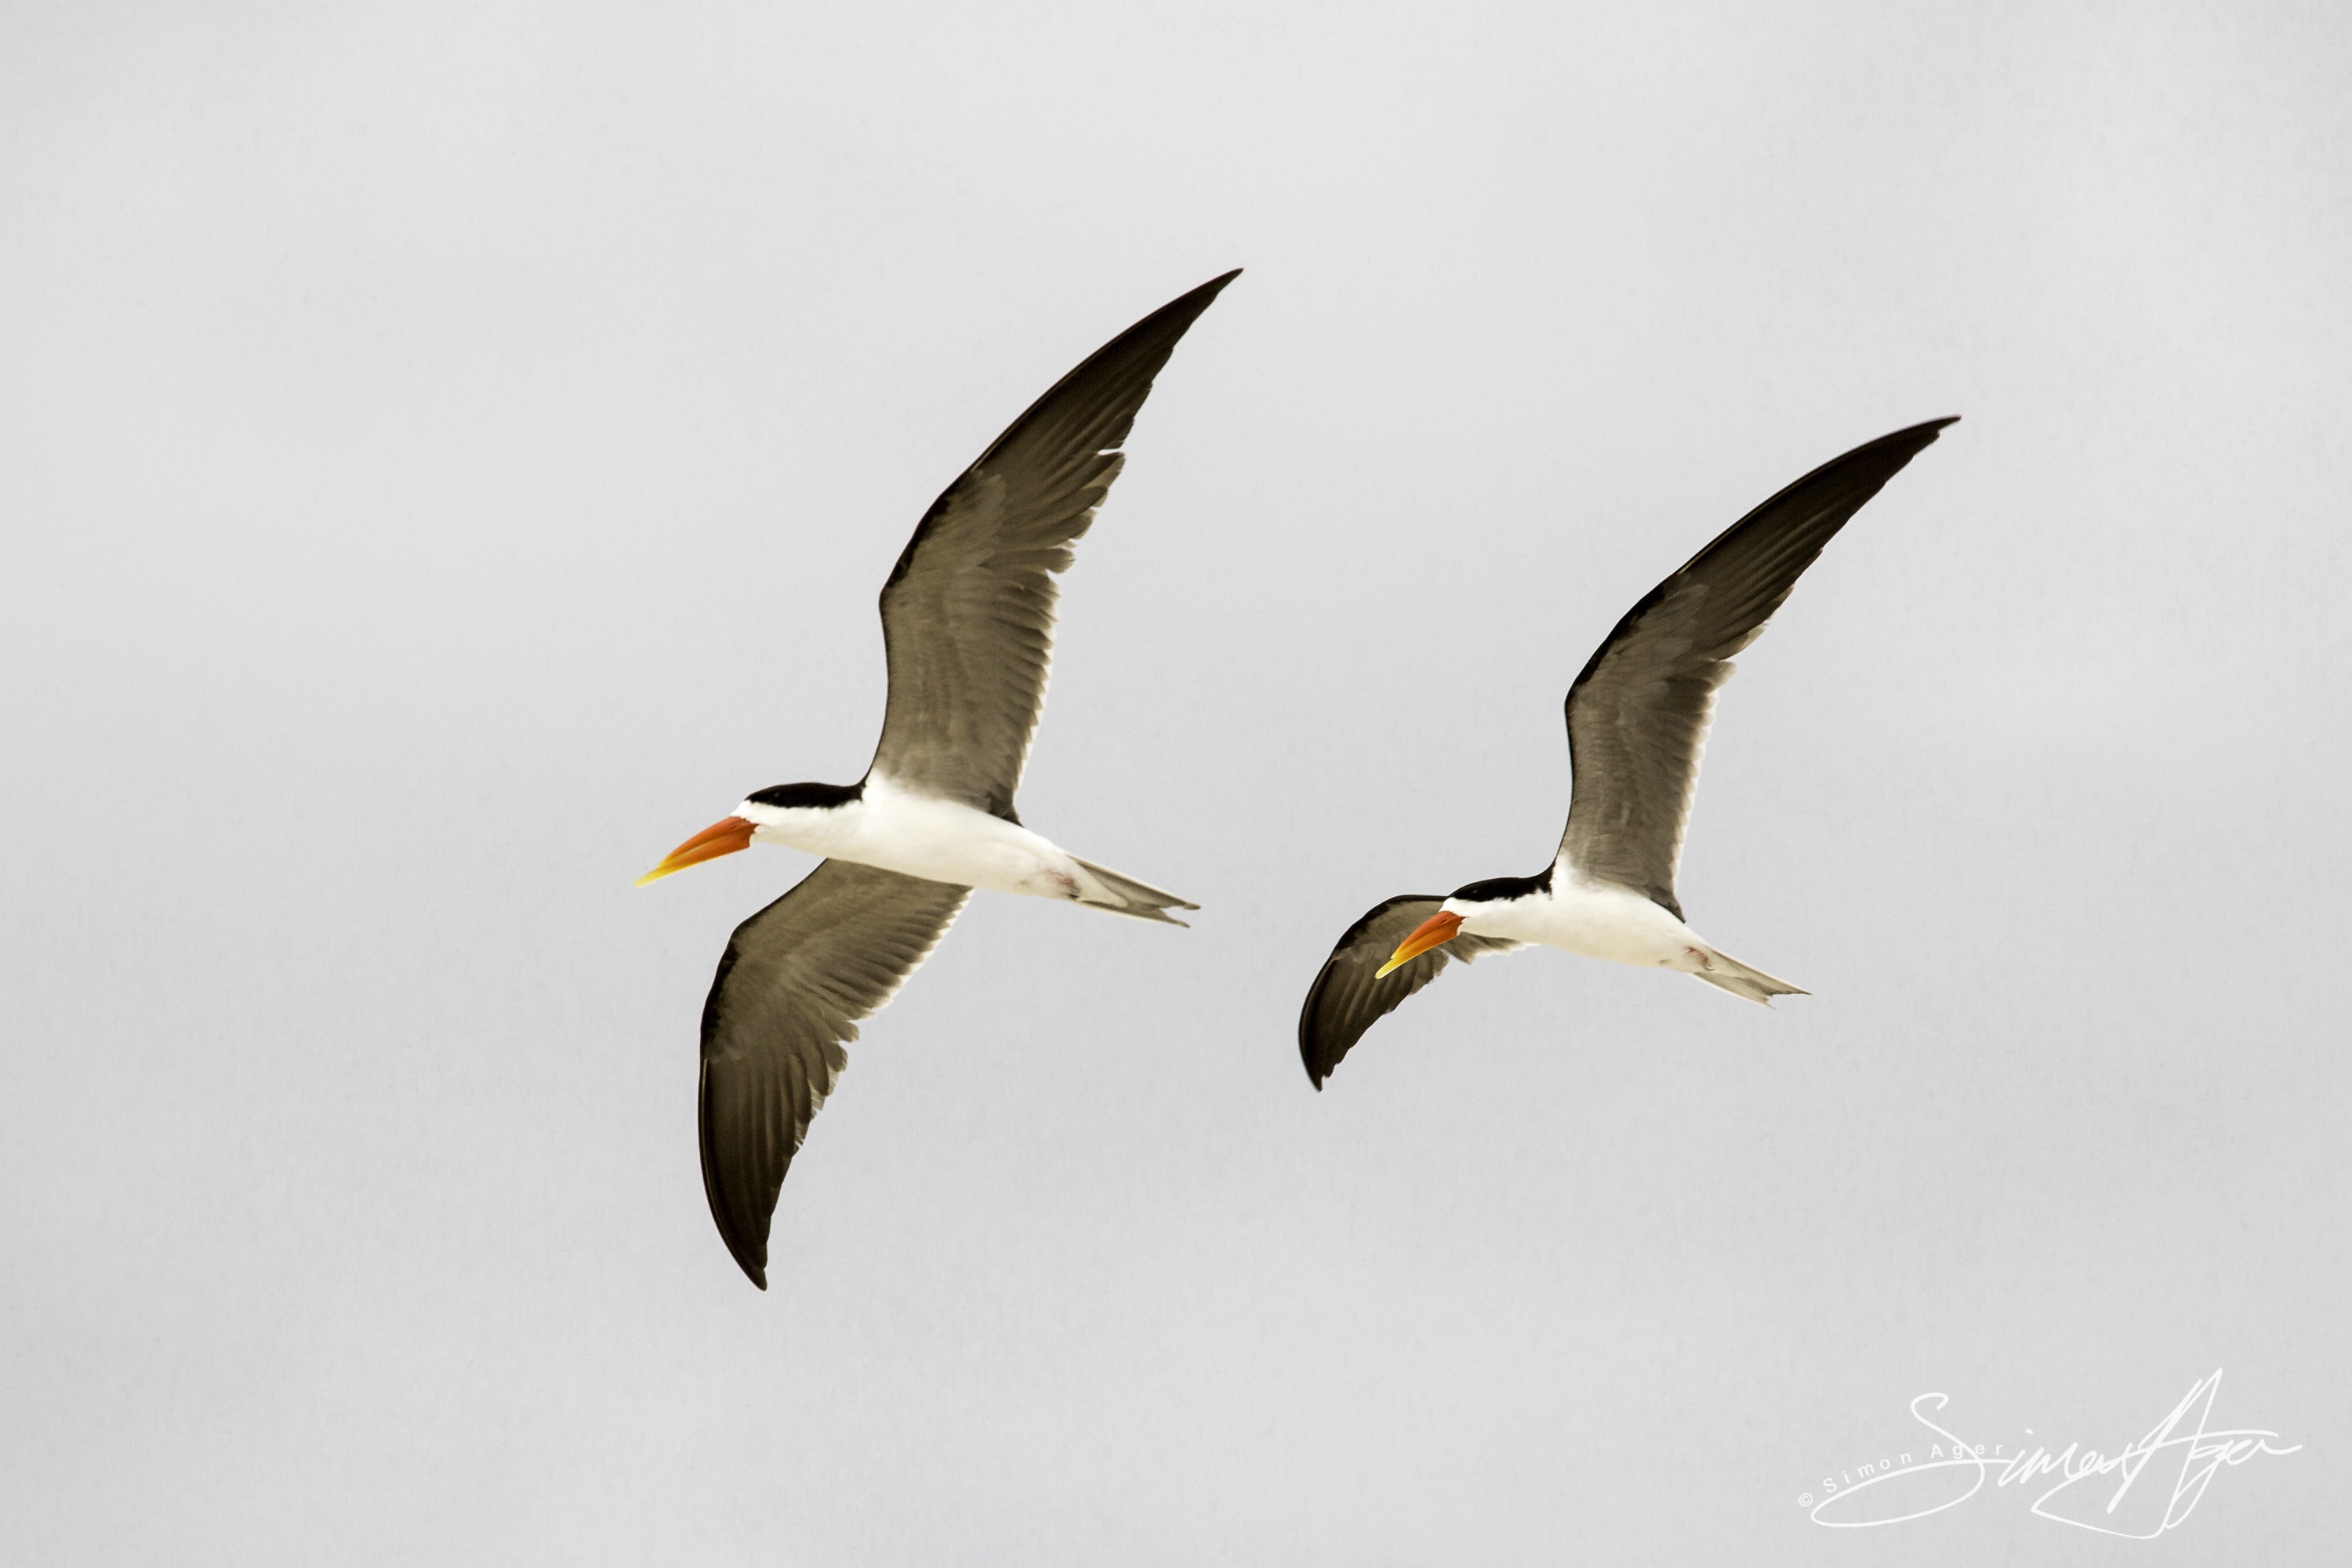 160705-SA-Myumba-Royal-Terns-fly-overhead-7148